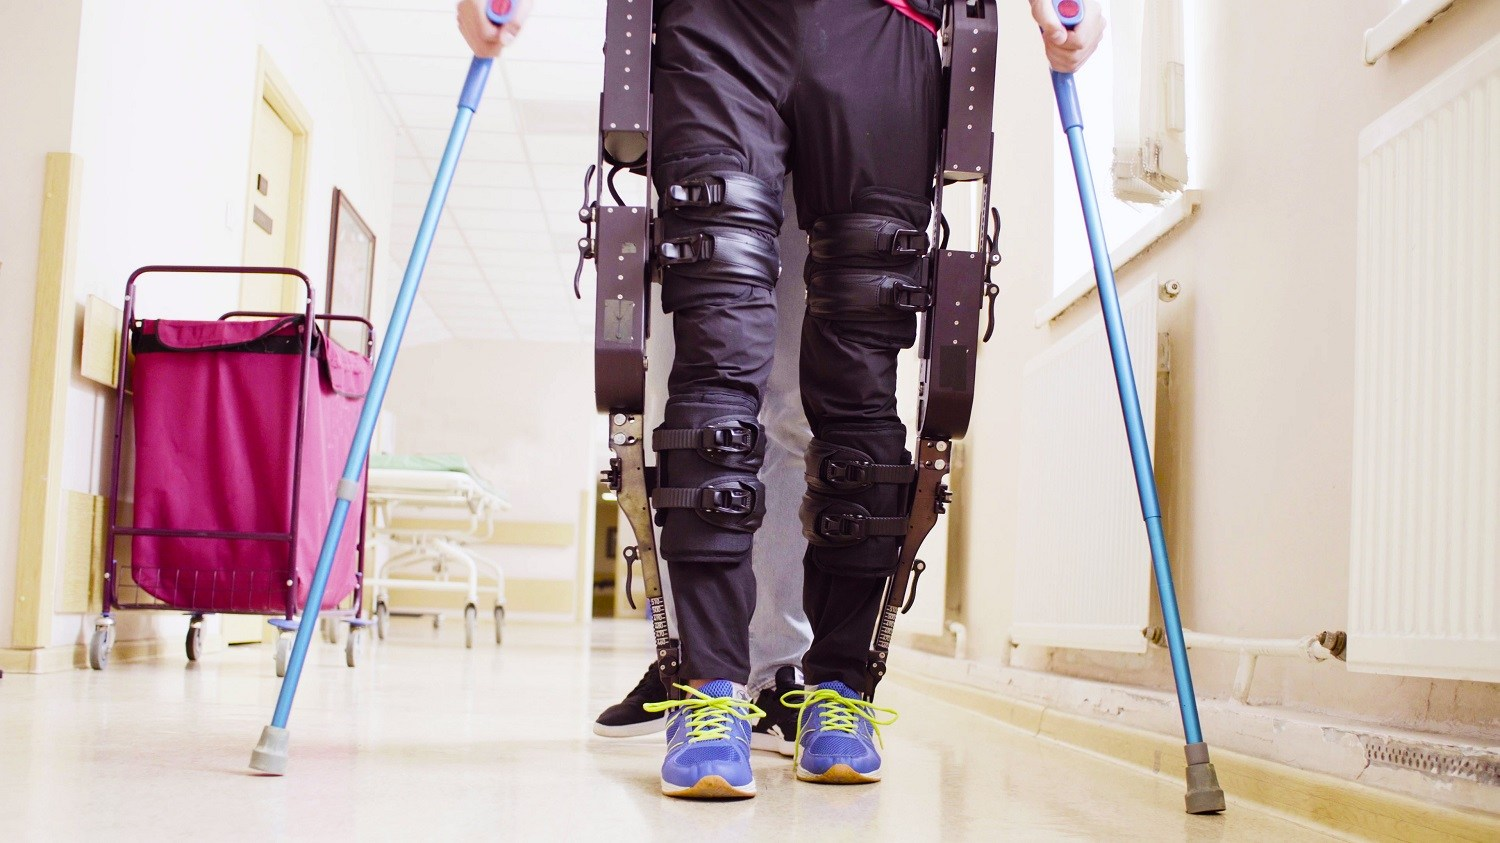 Person trying out the ReWalk exoskeleton